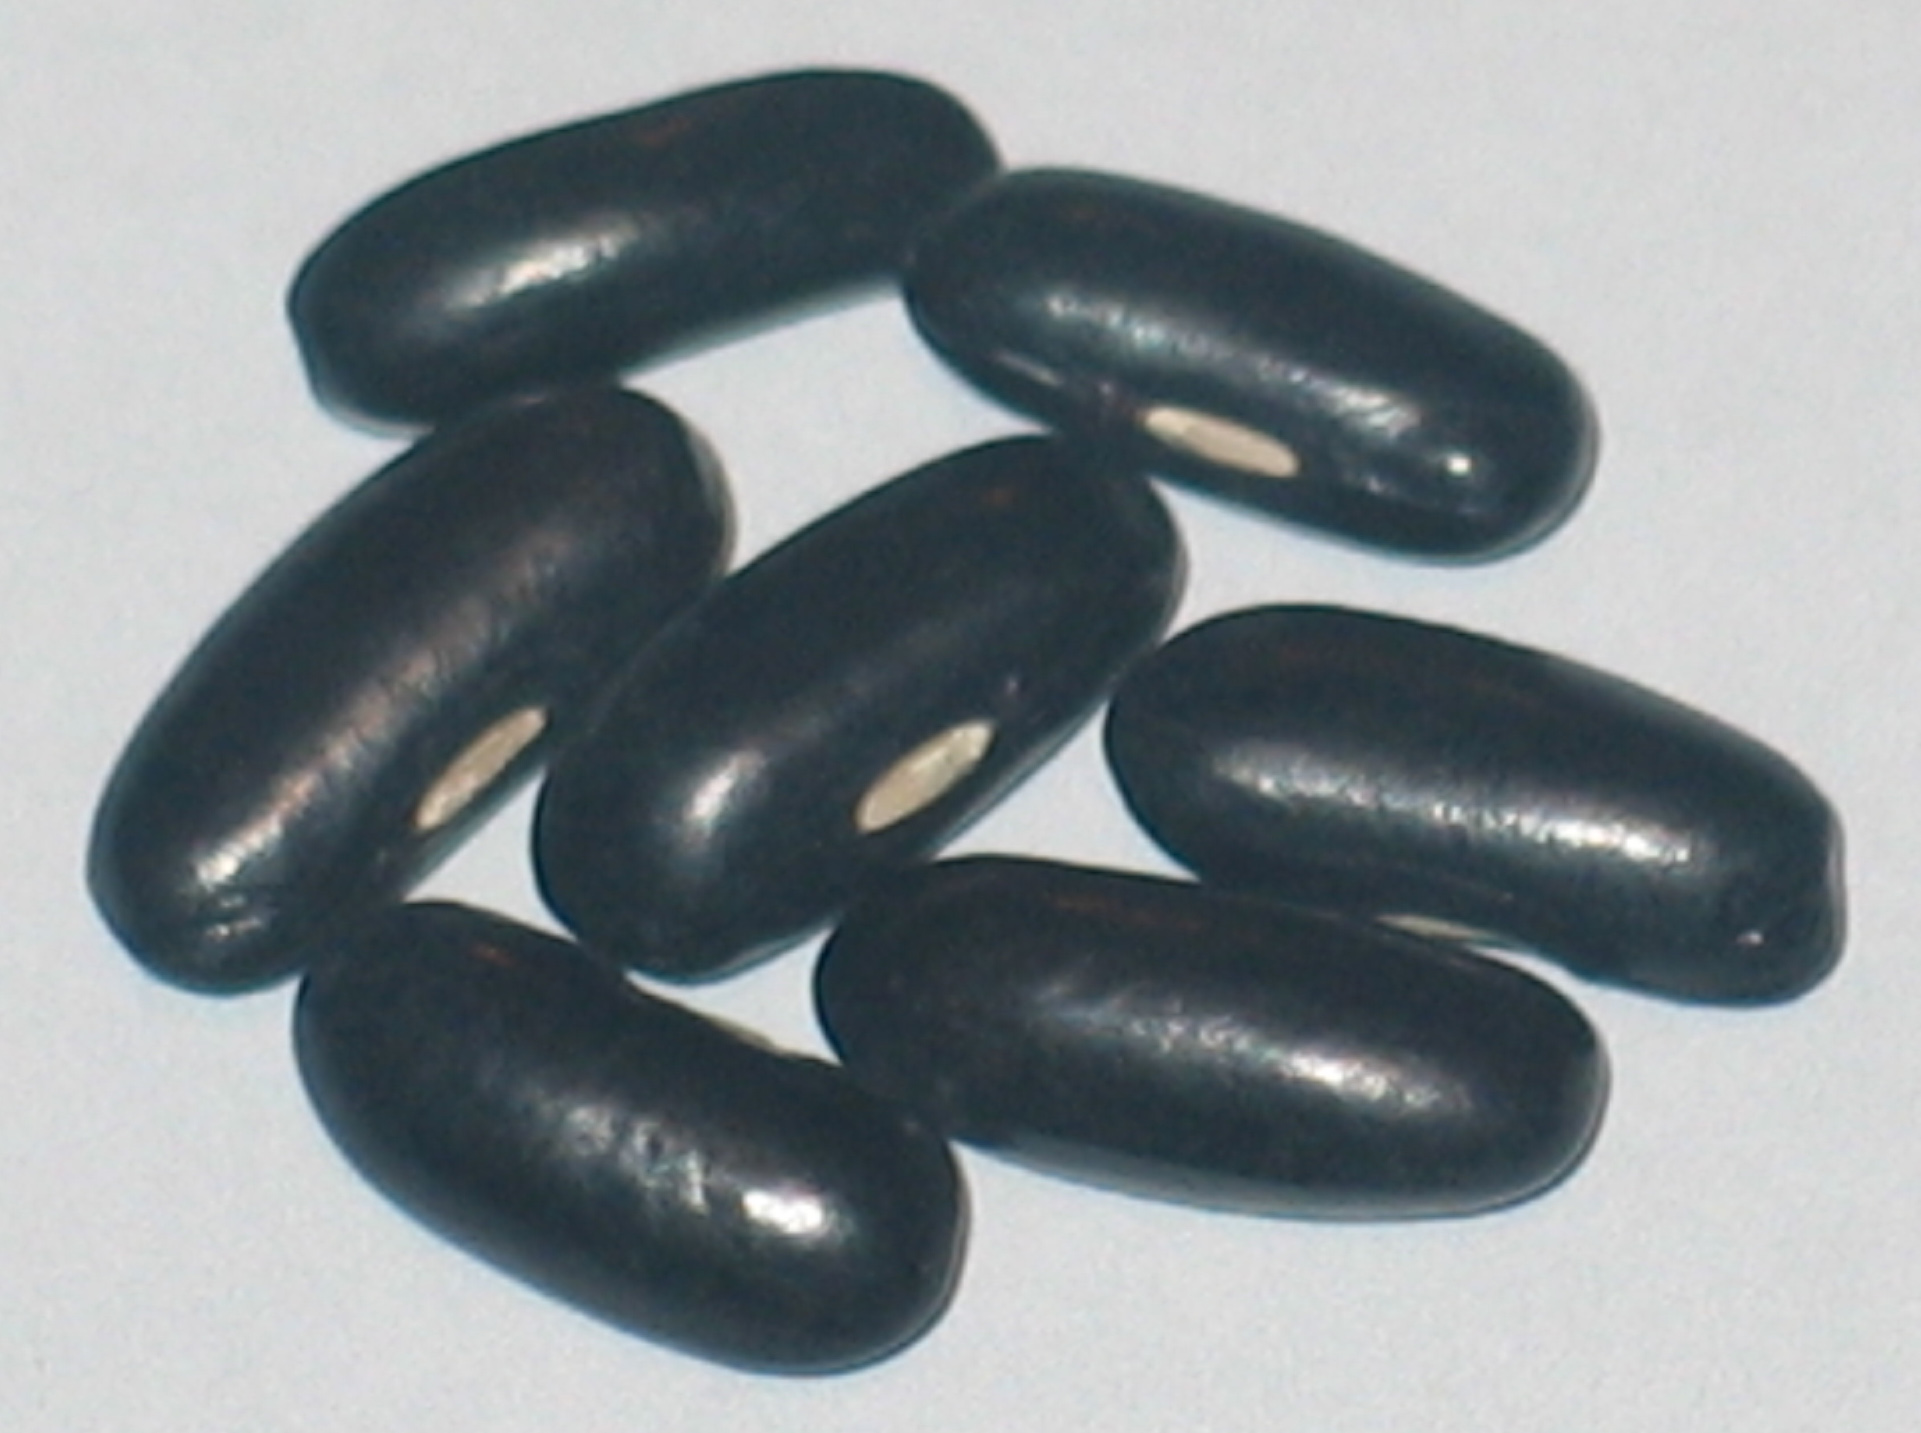 image of Roc D' Or beans